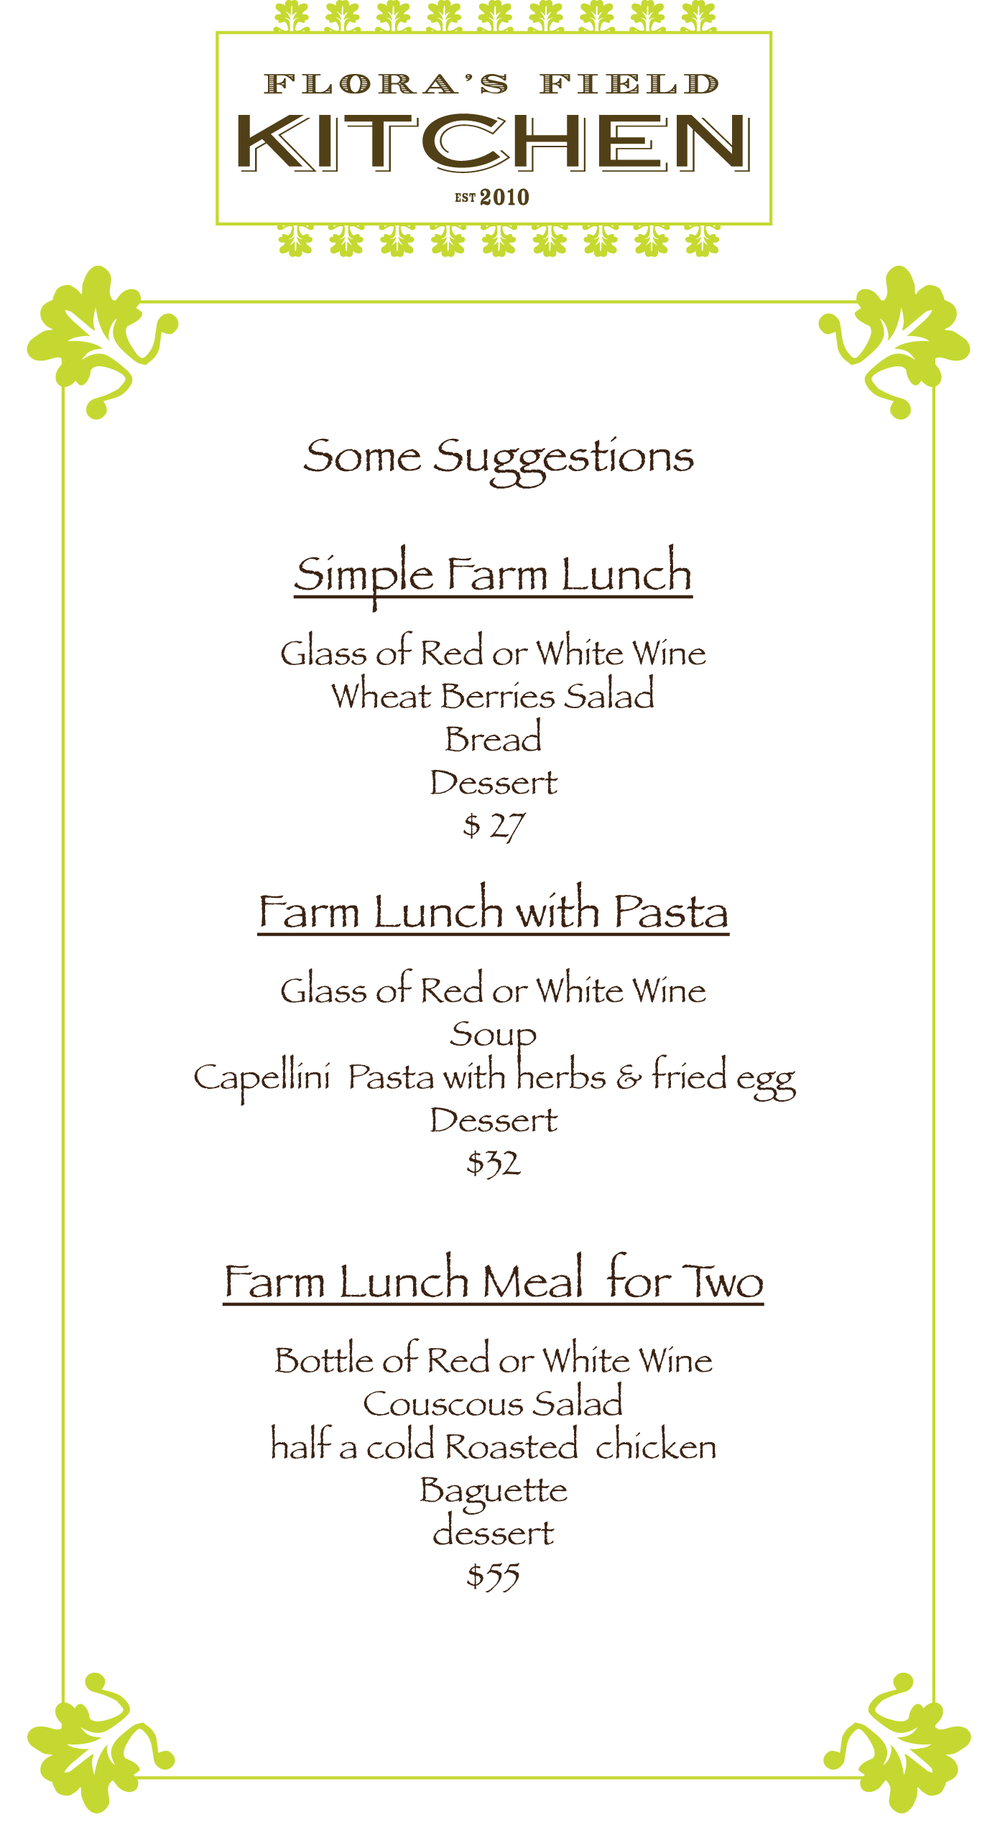 Lunch suggestions menu